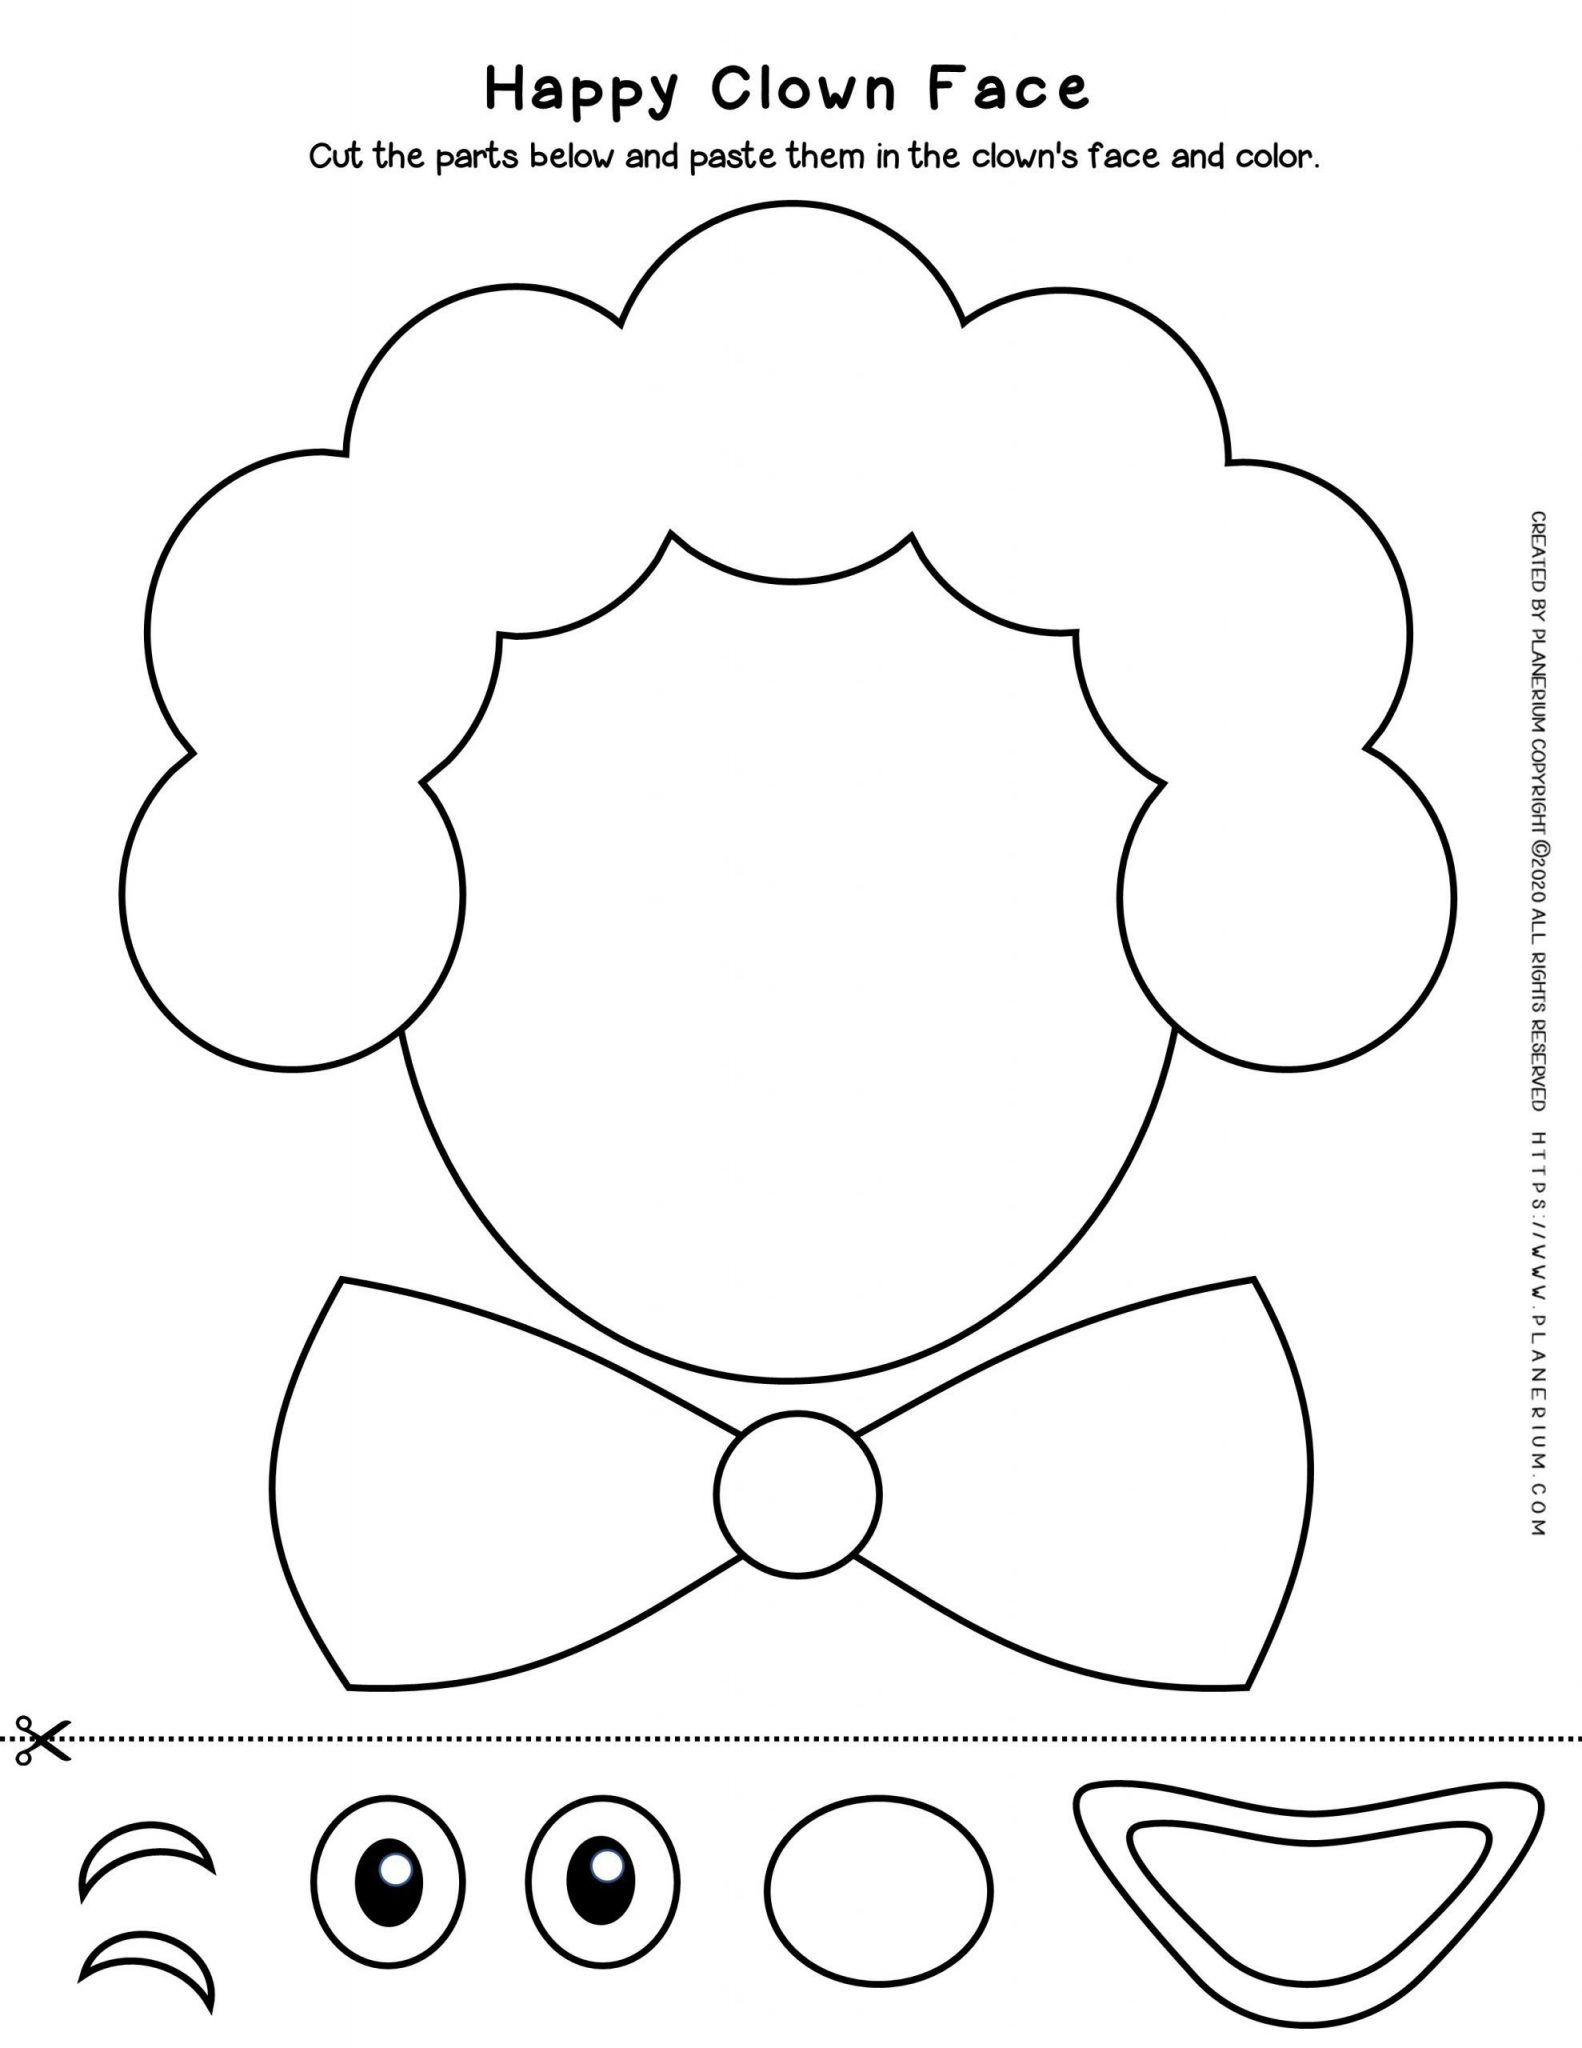 Carnival - Coloring Page Worksheet - Clown Cut Paste | Planerium